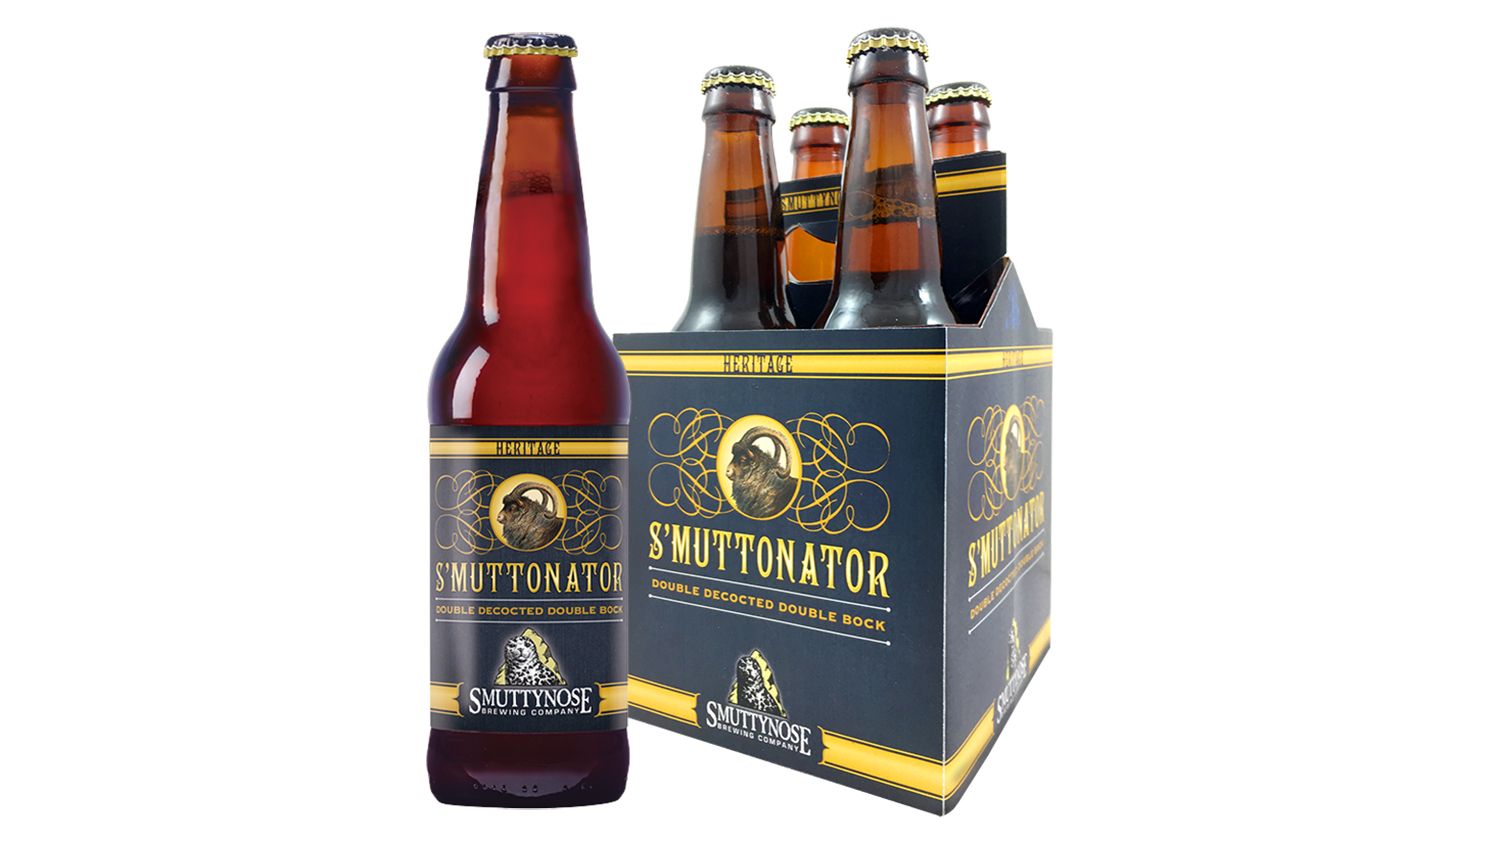 smuttynose brewing throwback beer heritage